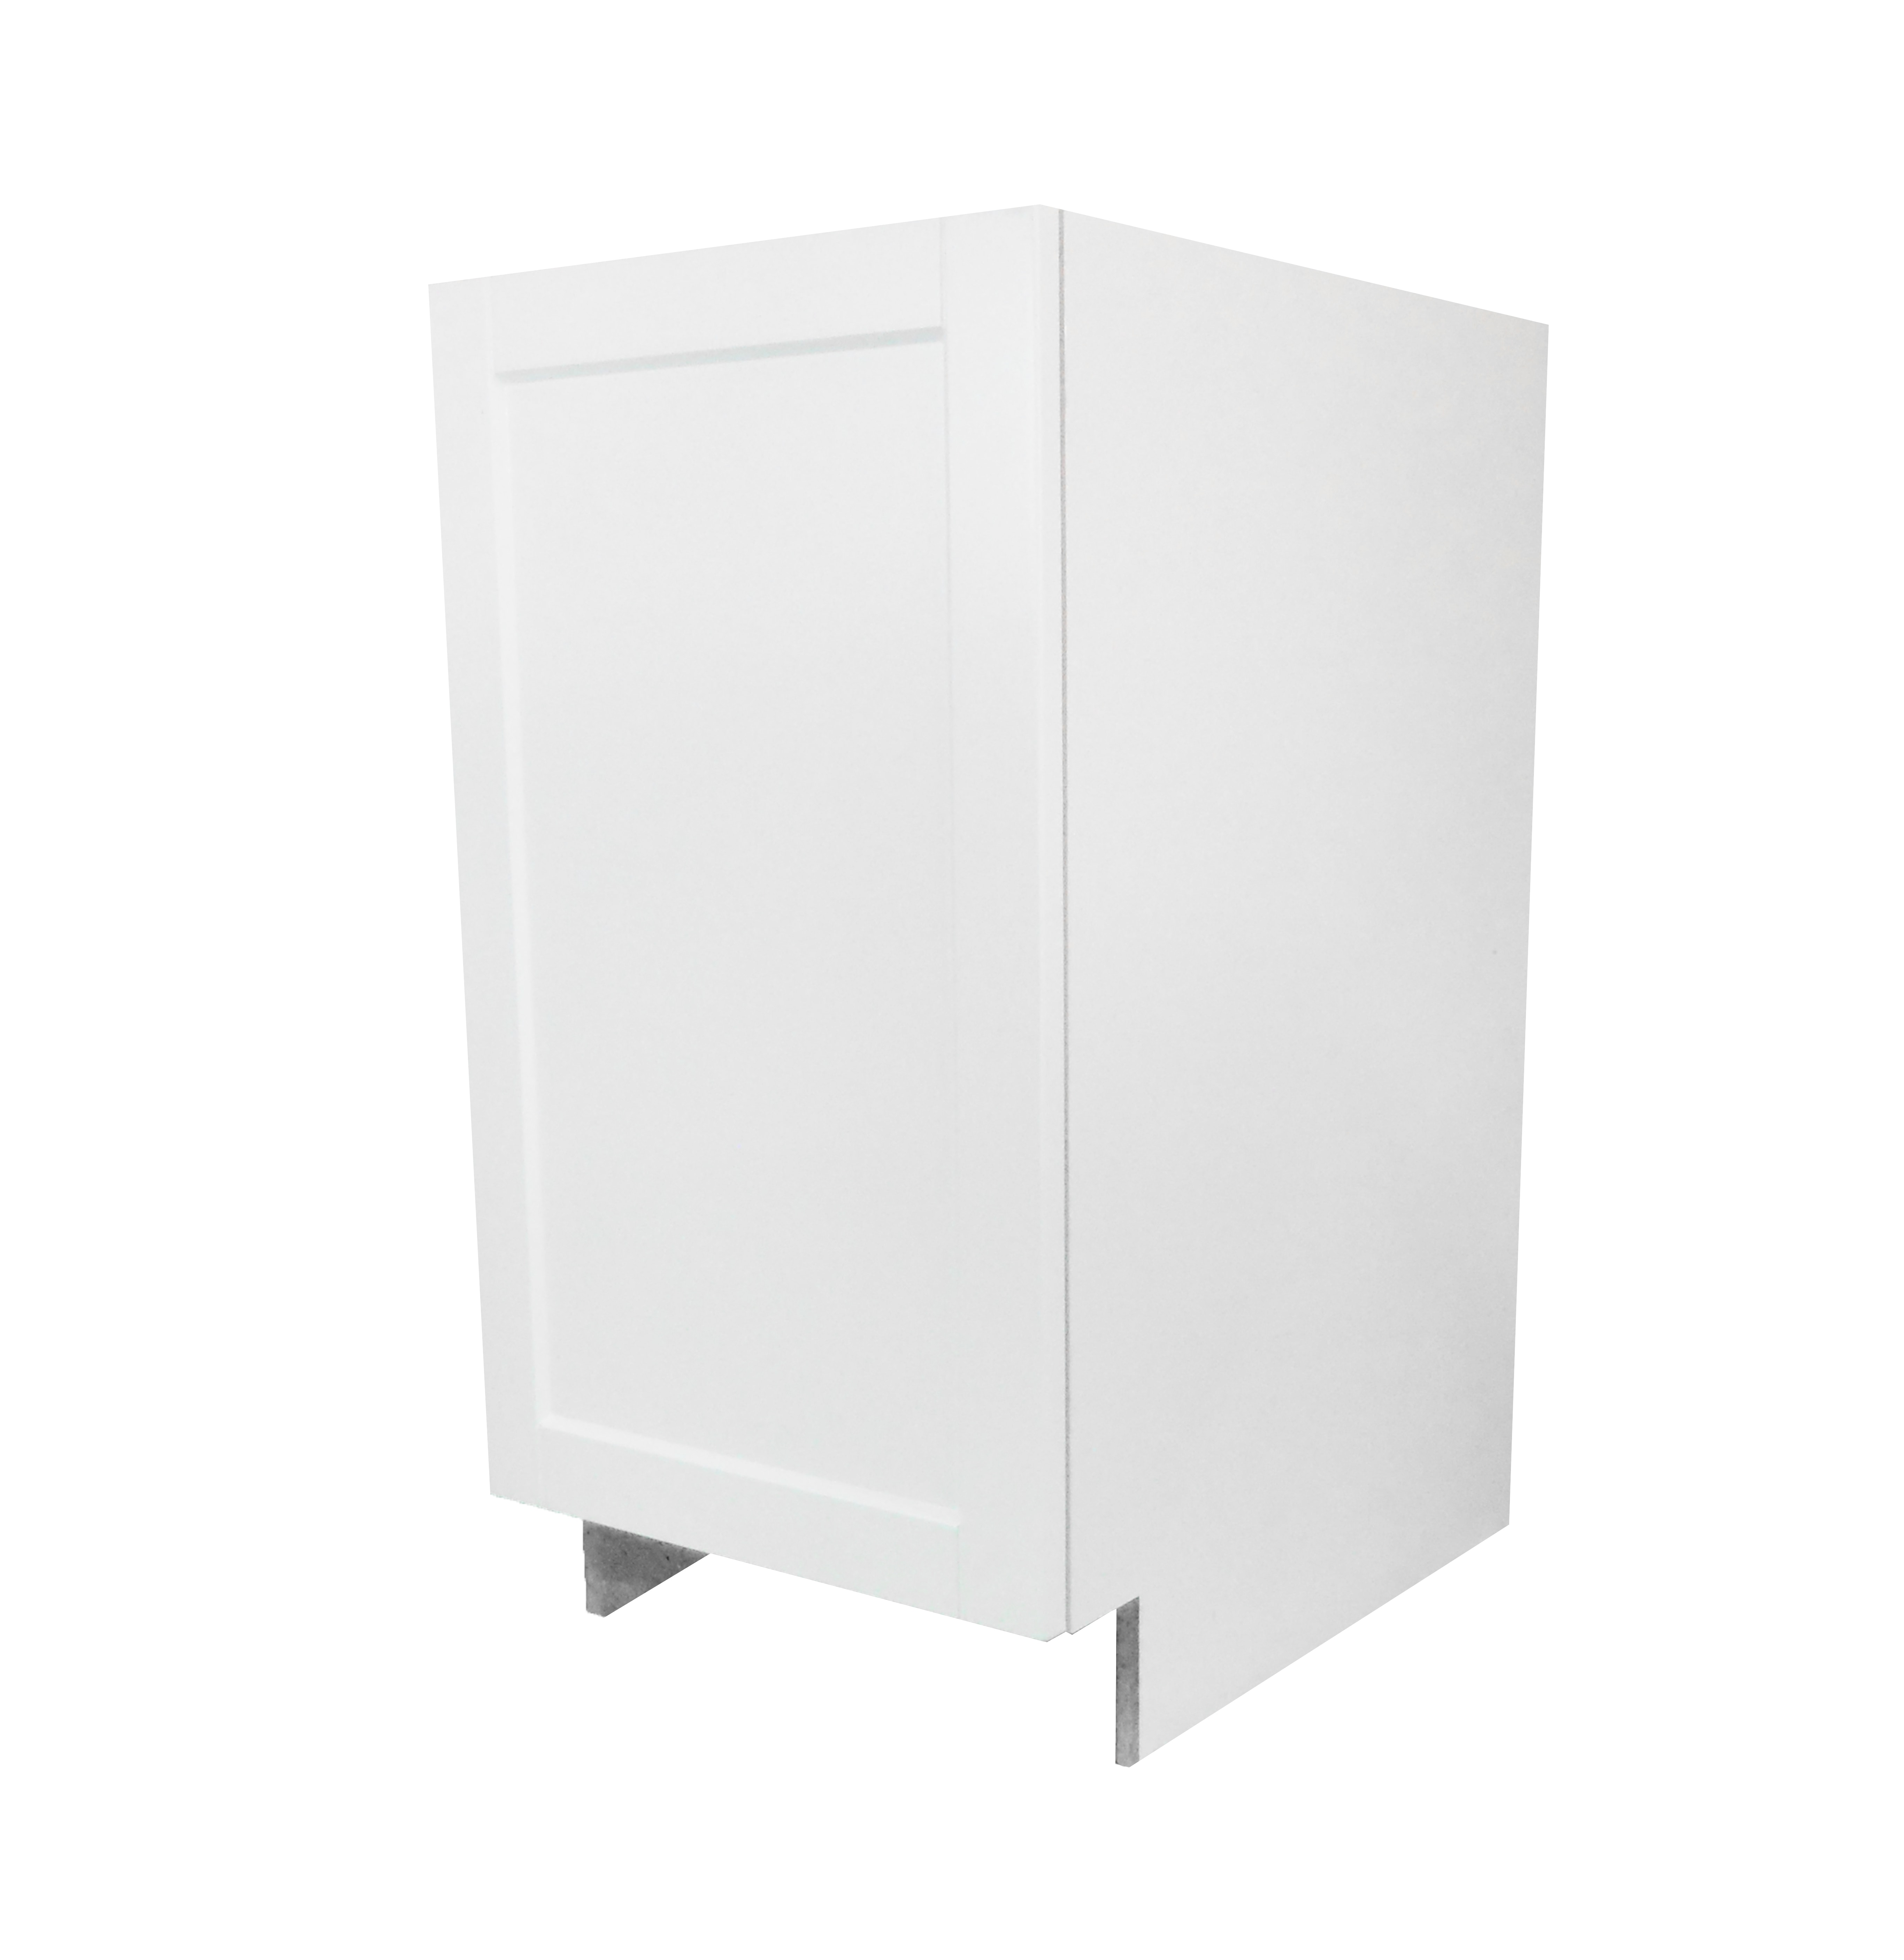 Base Cabinet With Door / Flat Panel White / 12 Solaire White 0